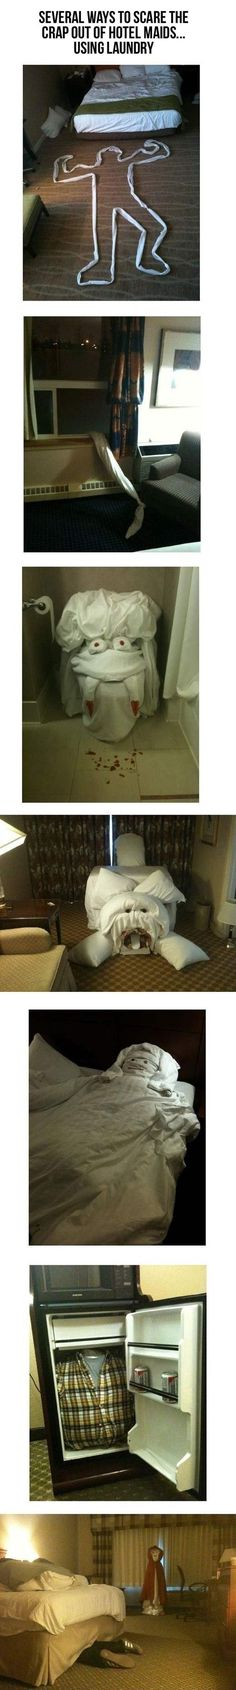 How to scare your maid.